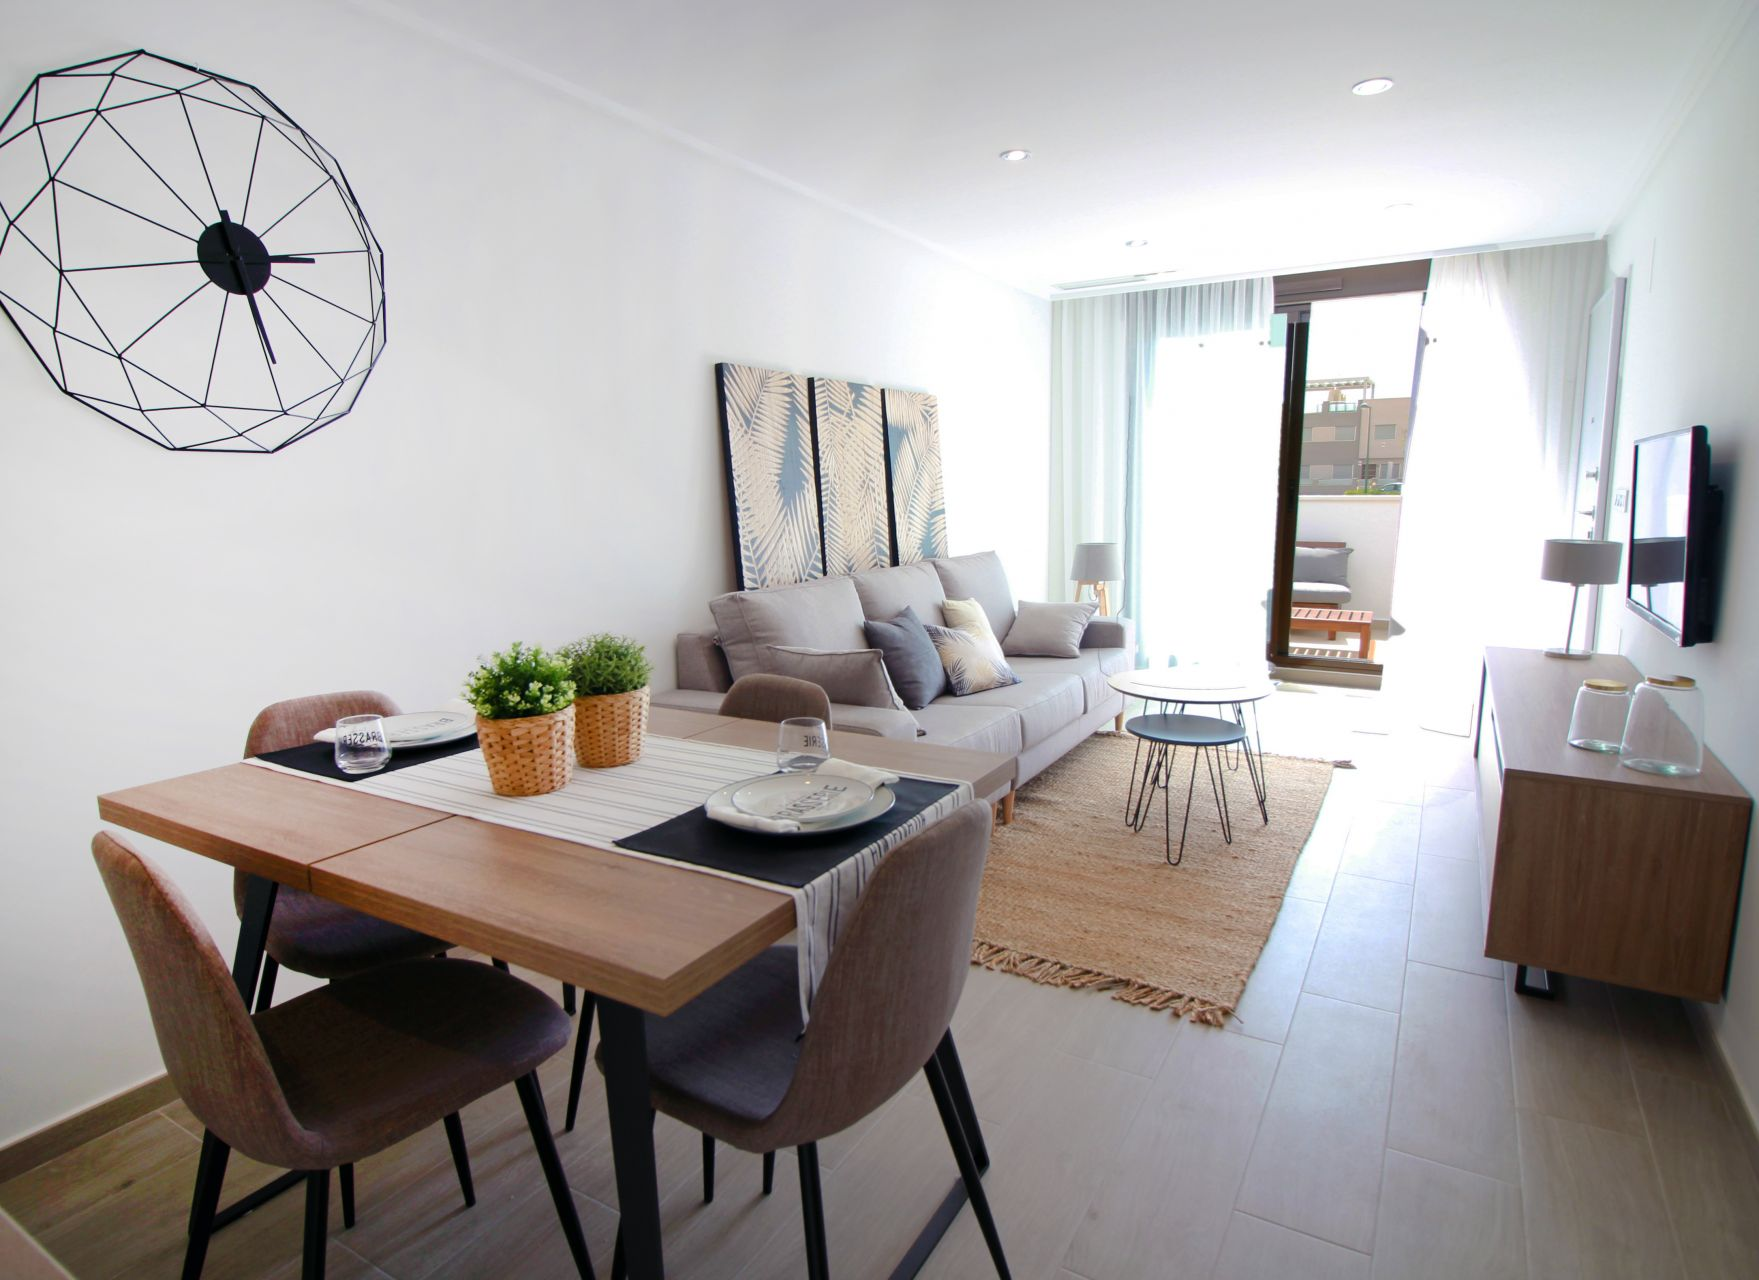 3 bedroom and 2 bathroom central groundfloor in Torre de la Horadada 27